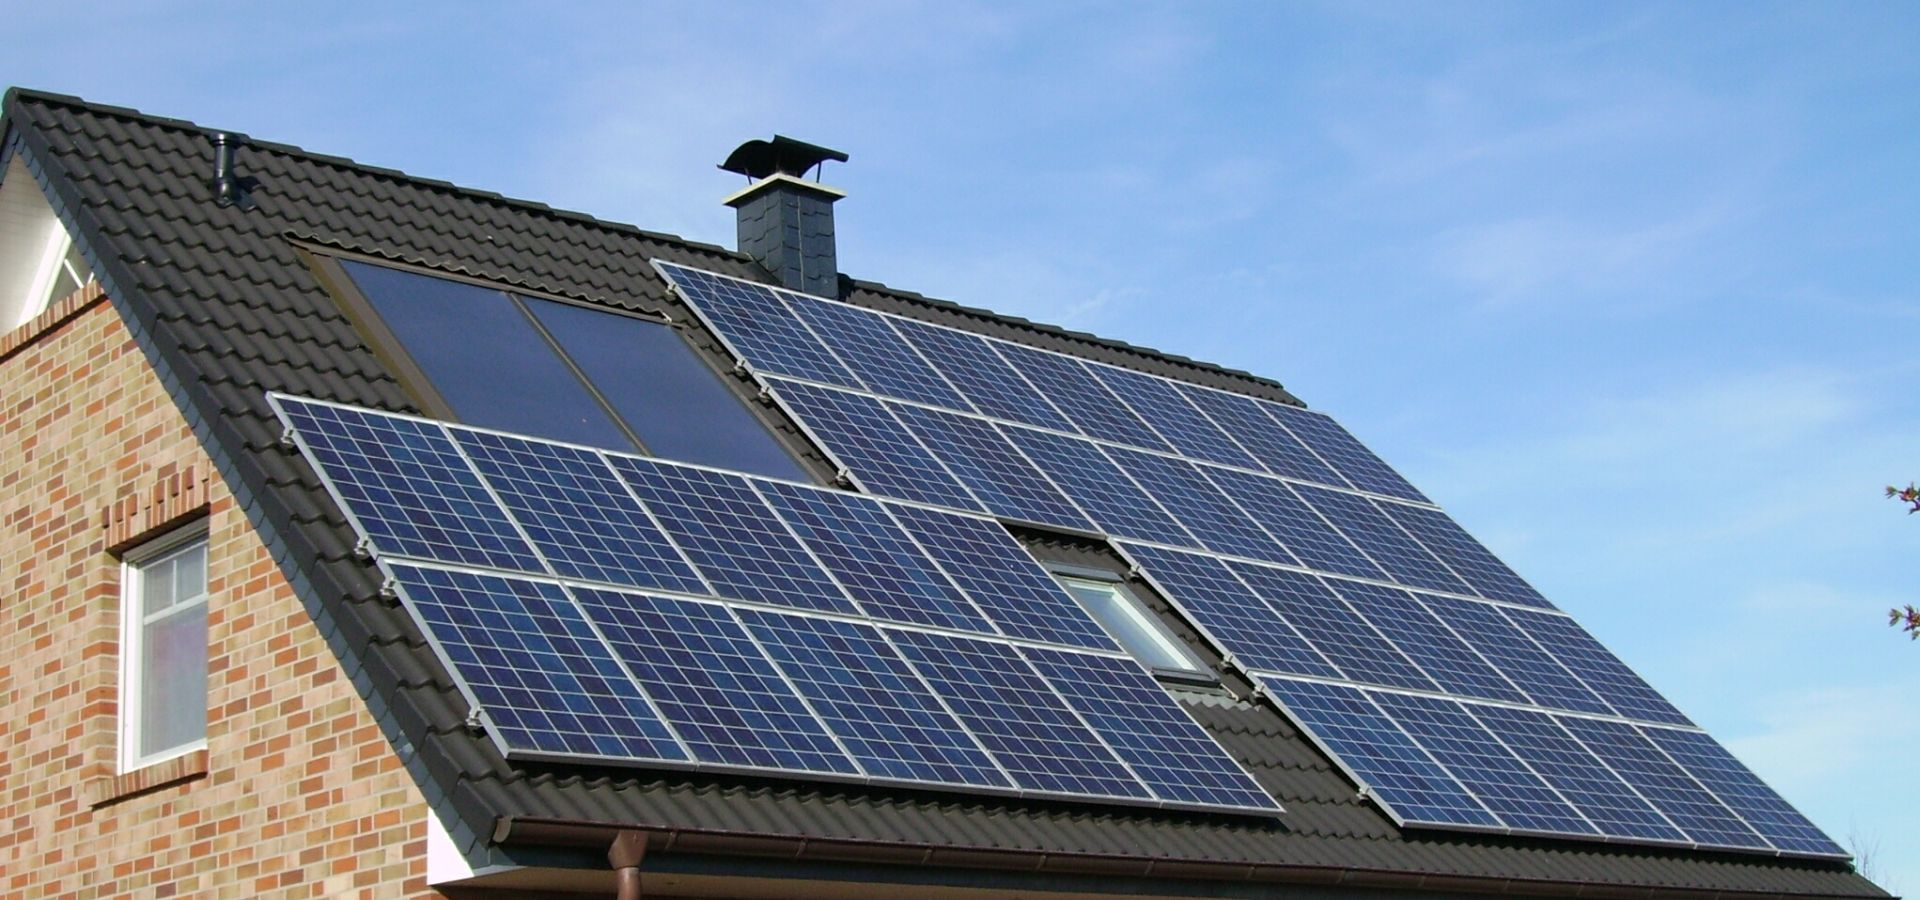 solar panels on the roof of a brick house